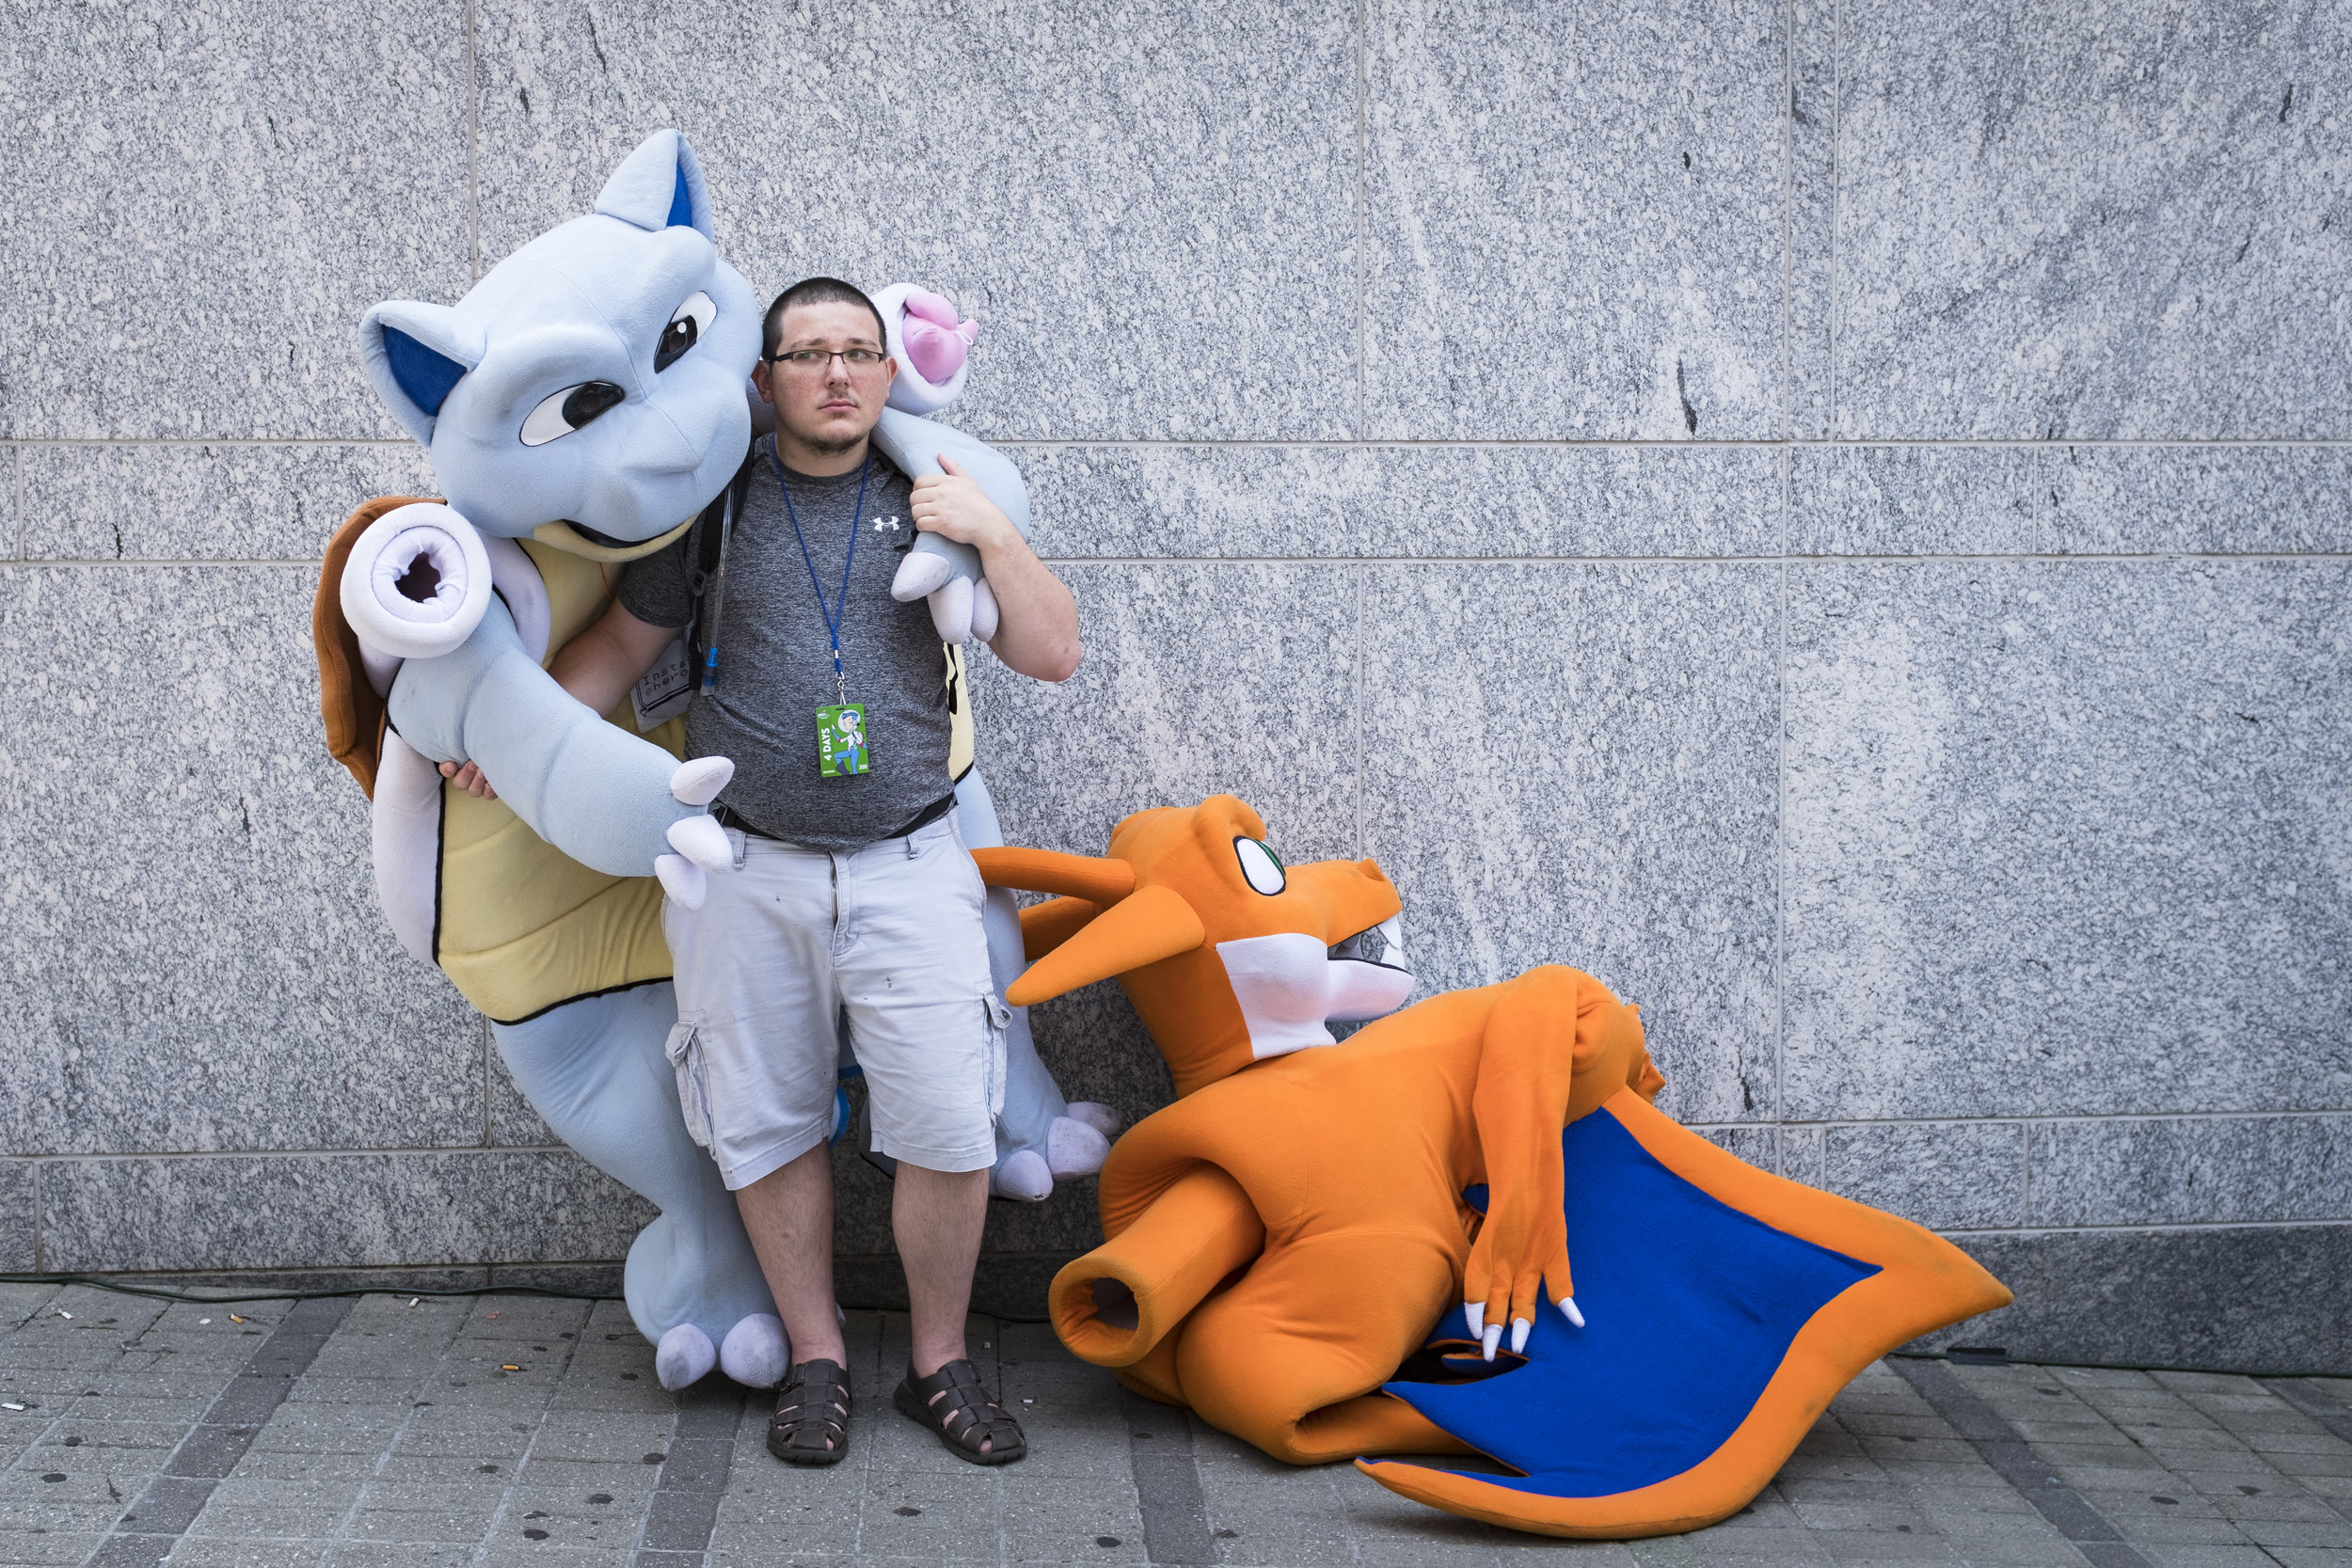 Aaron Hampson stands outside the convention center as he gets ready for lunch after a morning of being dressed up as a Pokemon at GalaxyCon in Raleigh, NC on July 26, 2019.